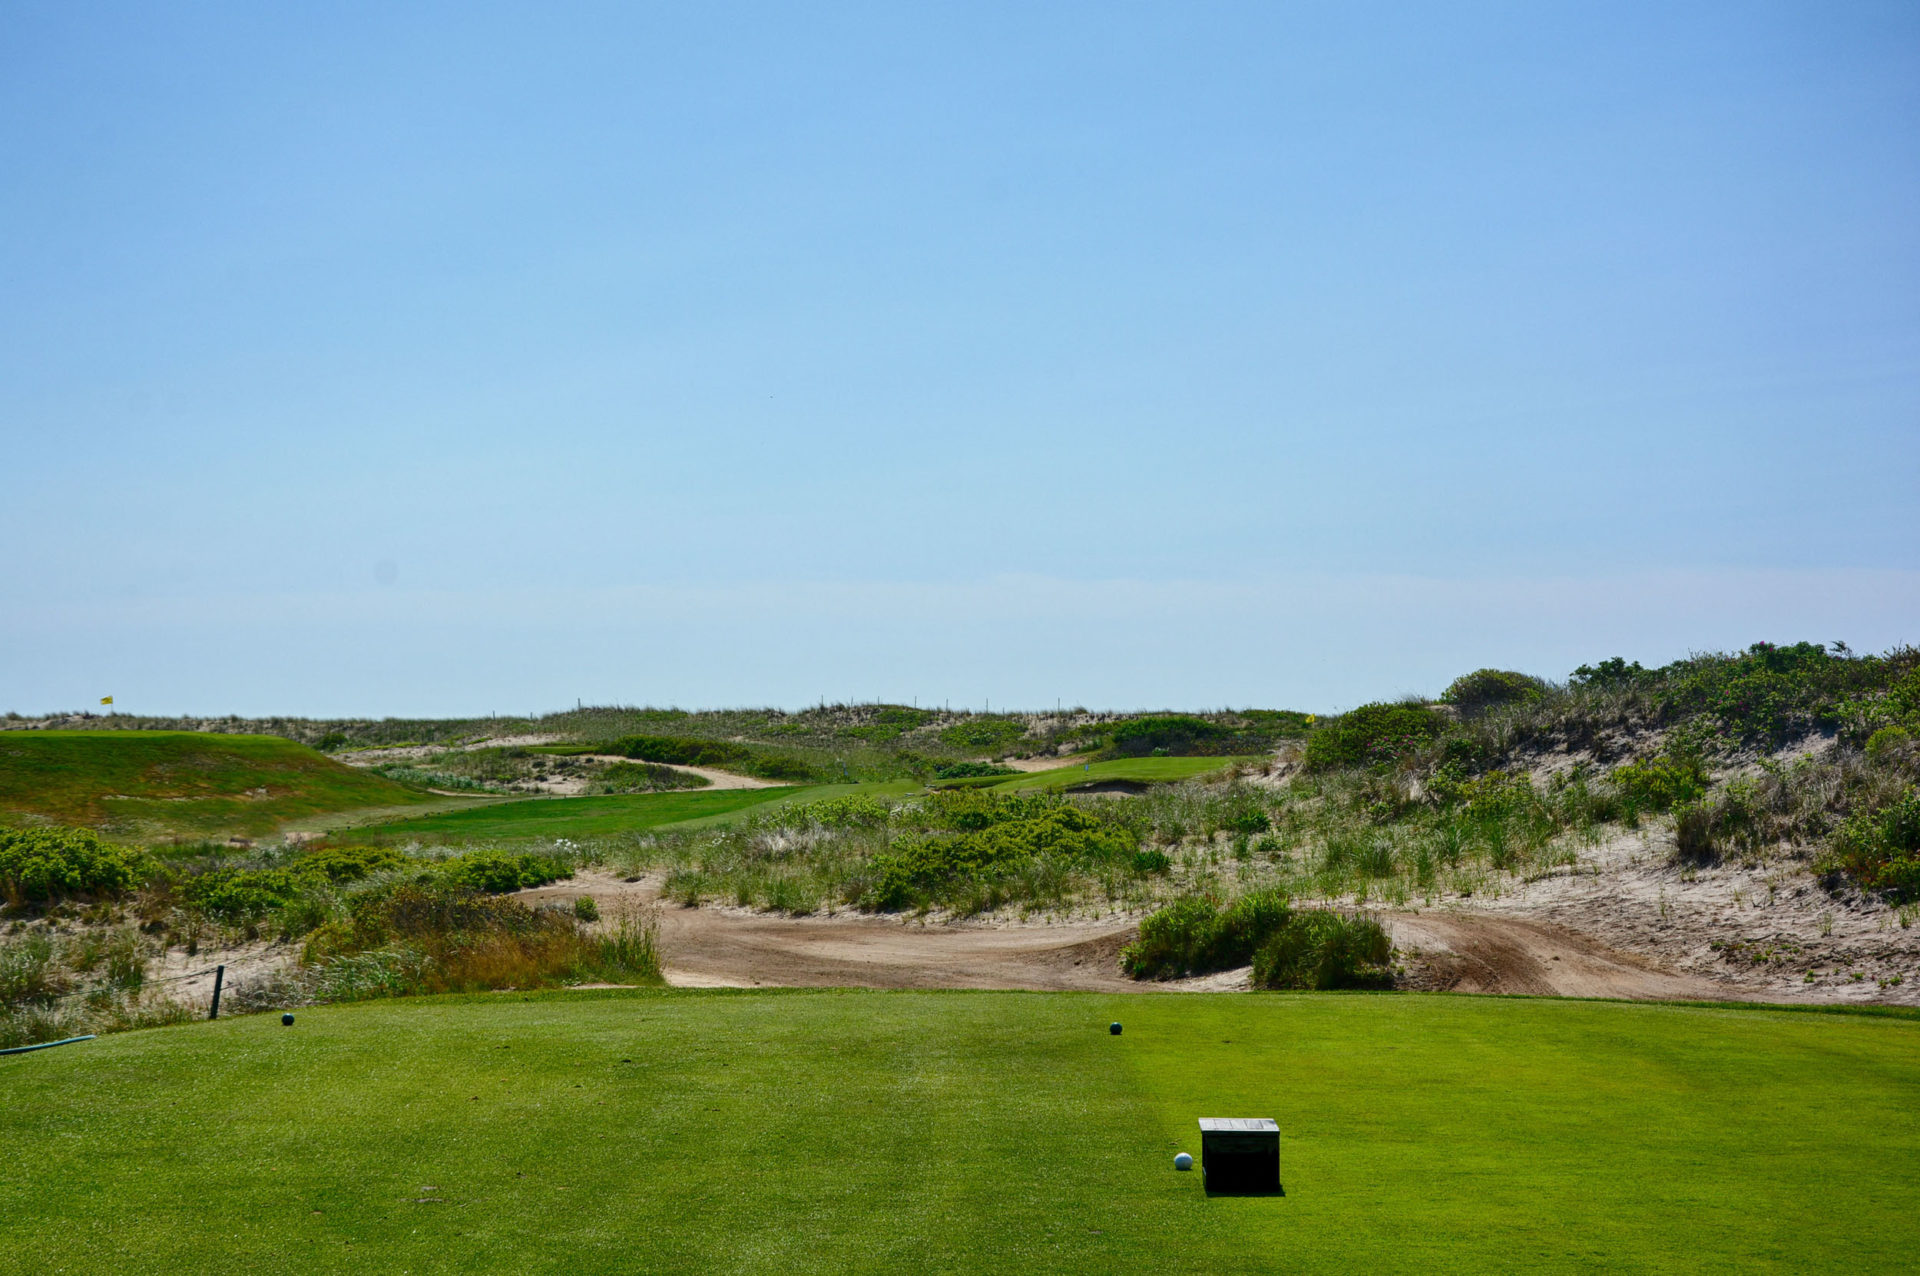 Maidstone Club: An Unforgettable Experience